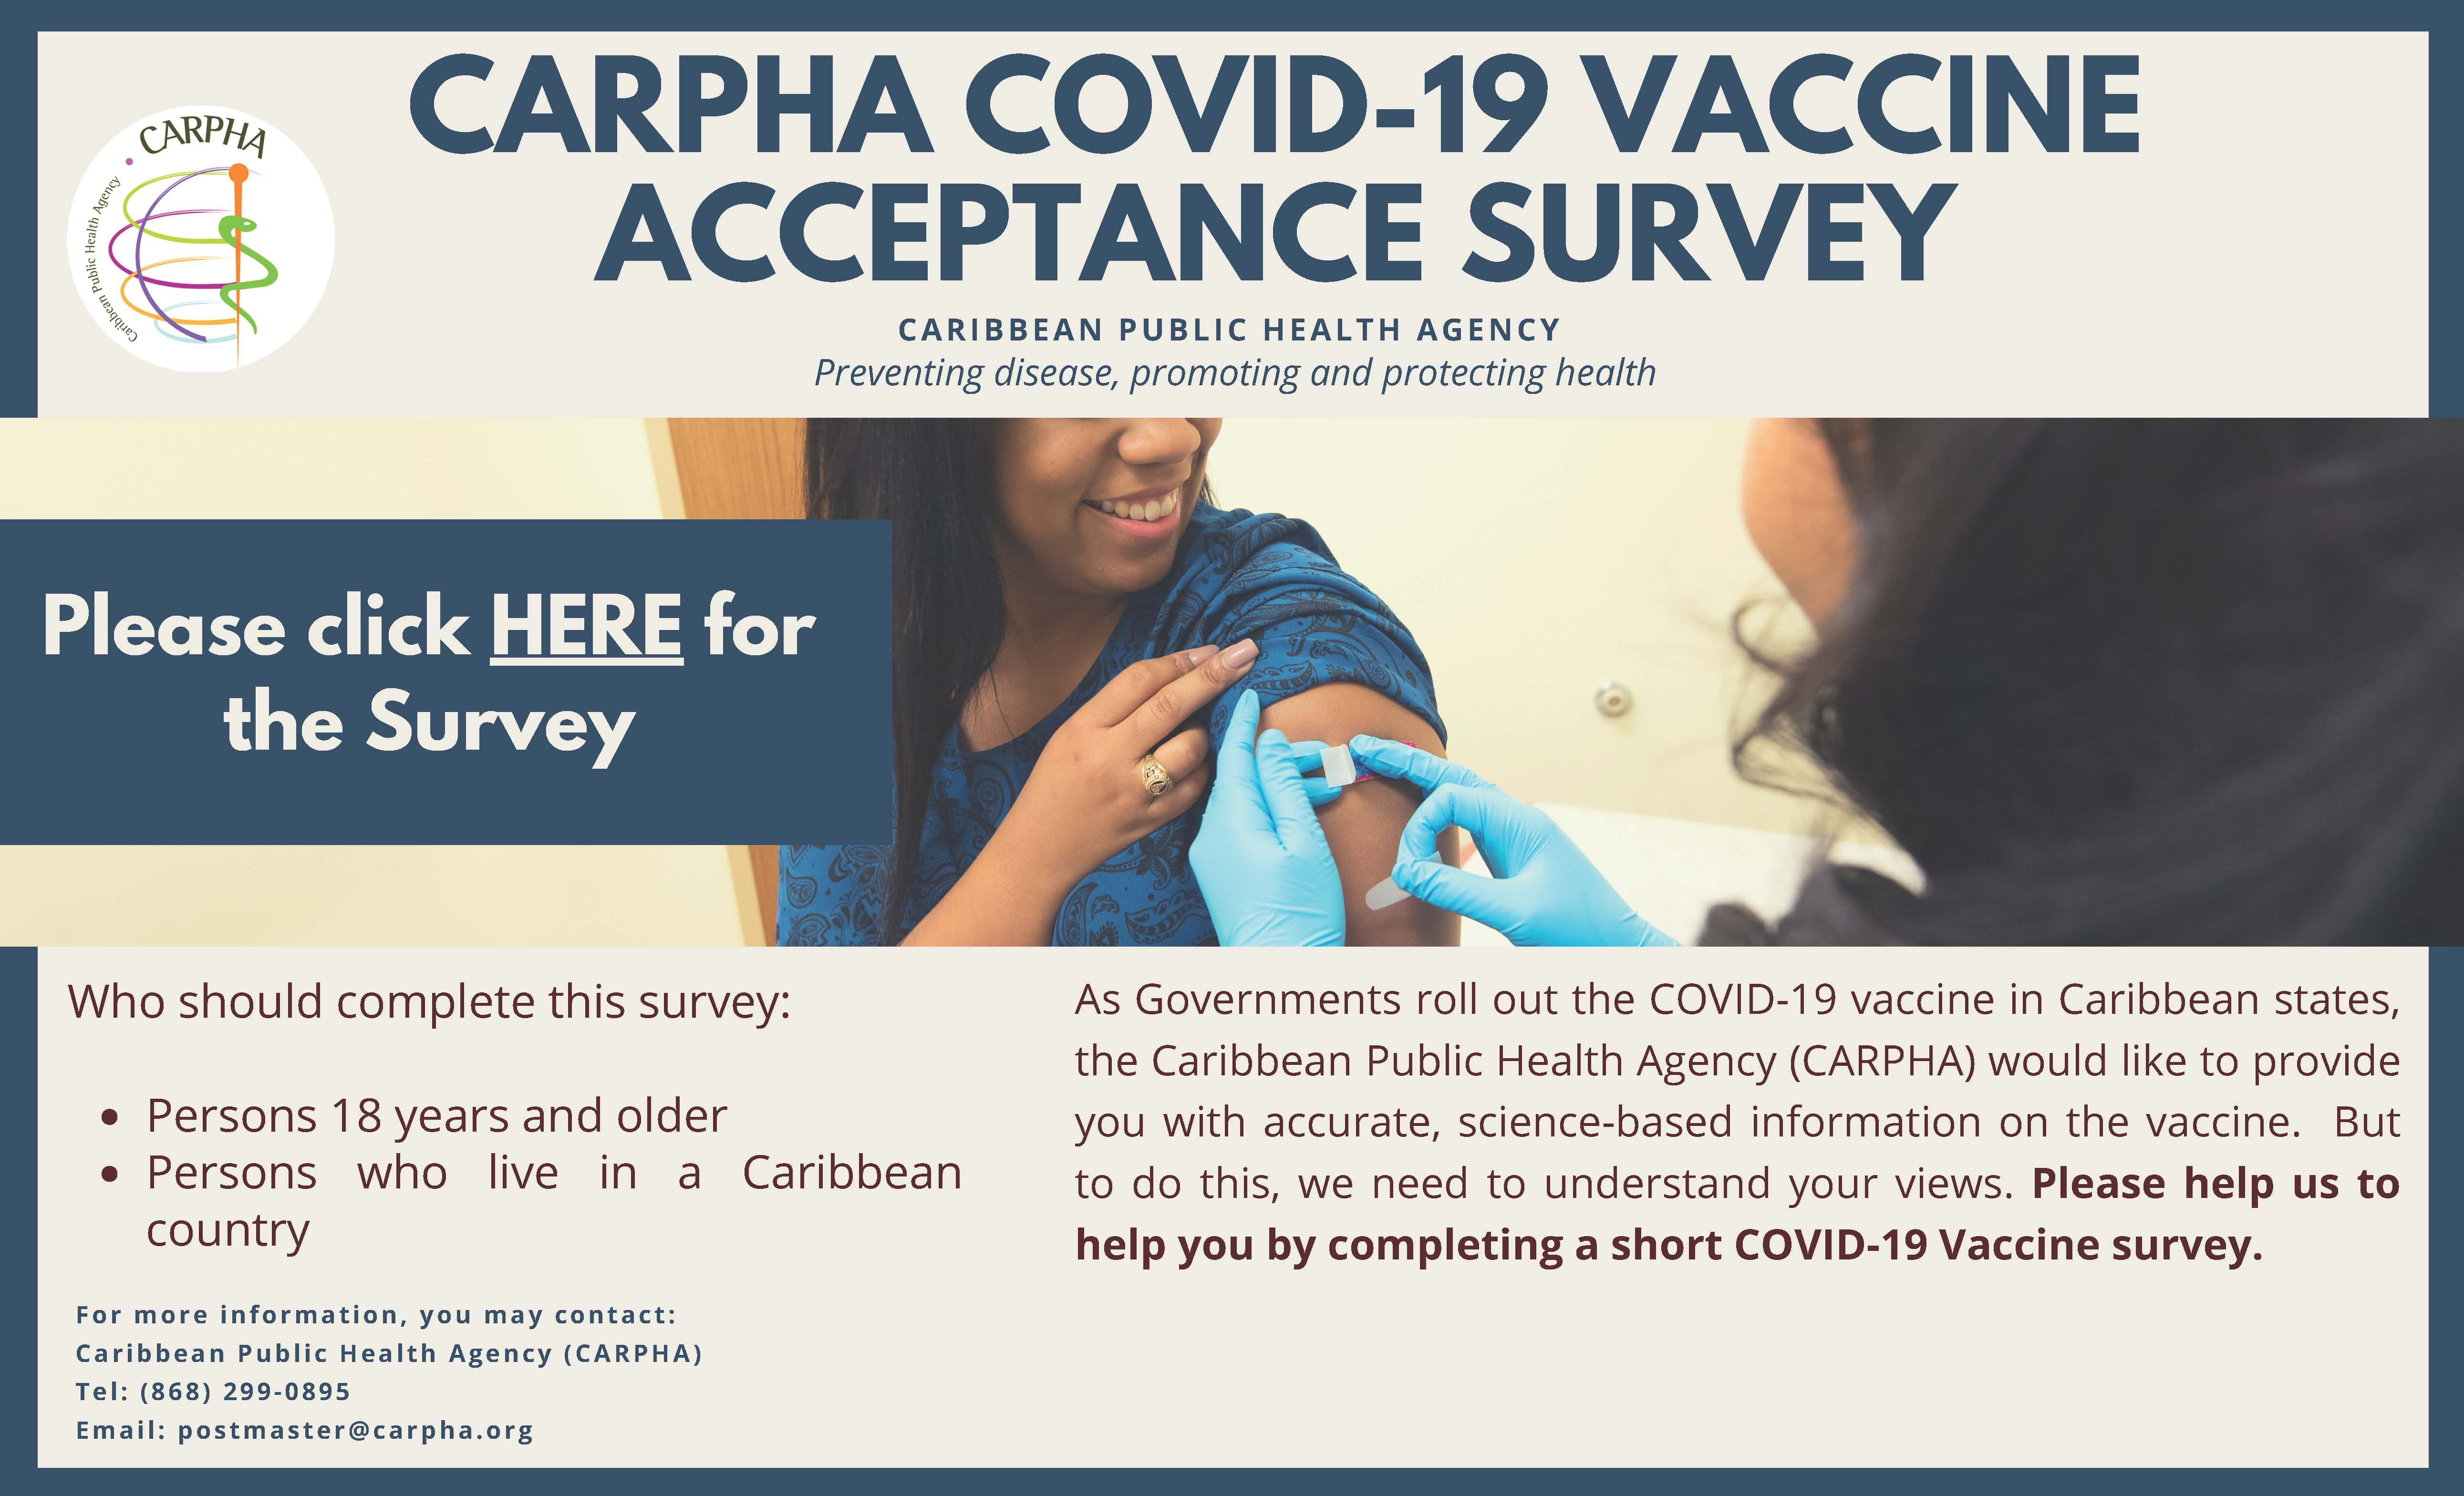 CARPHA Launches COVID-19 Vaccine Acceptance Survey